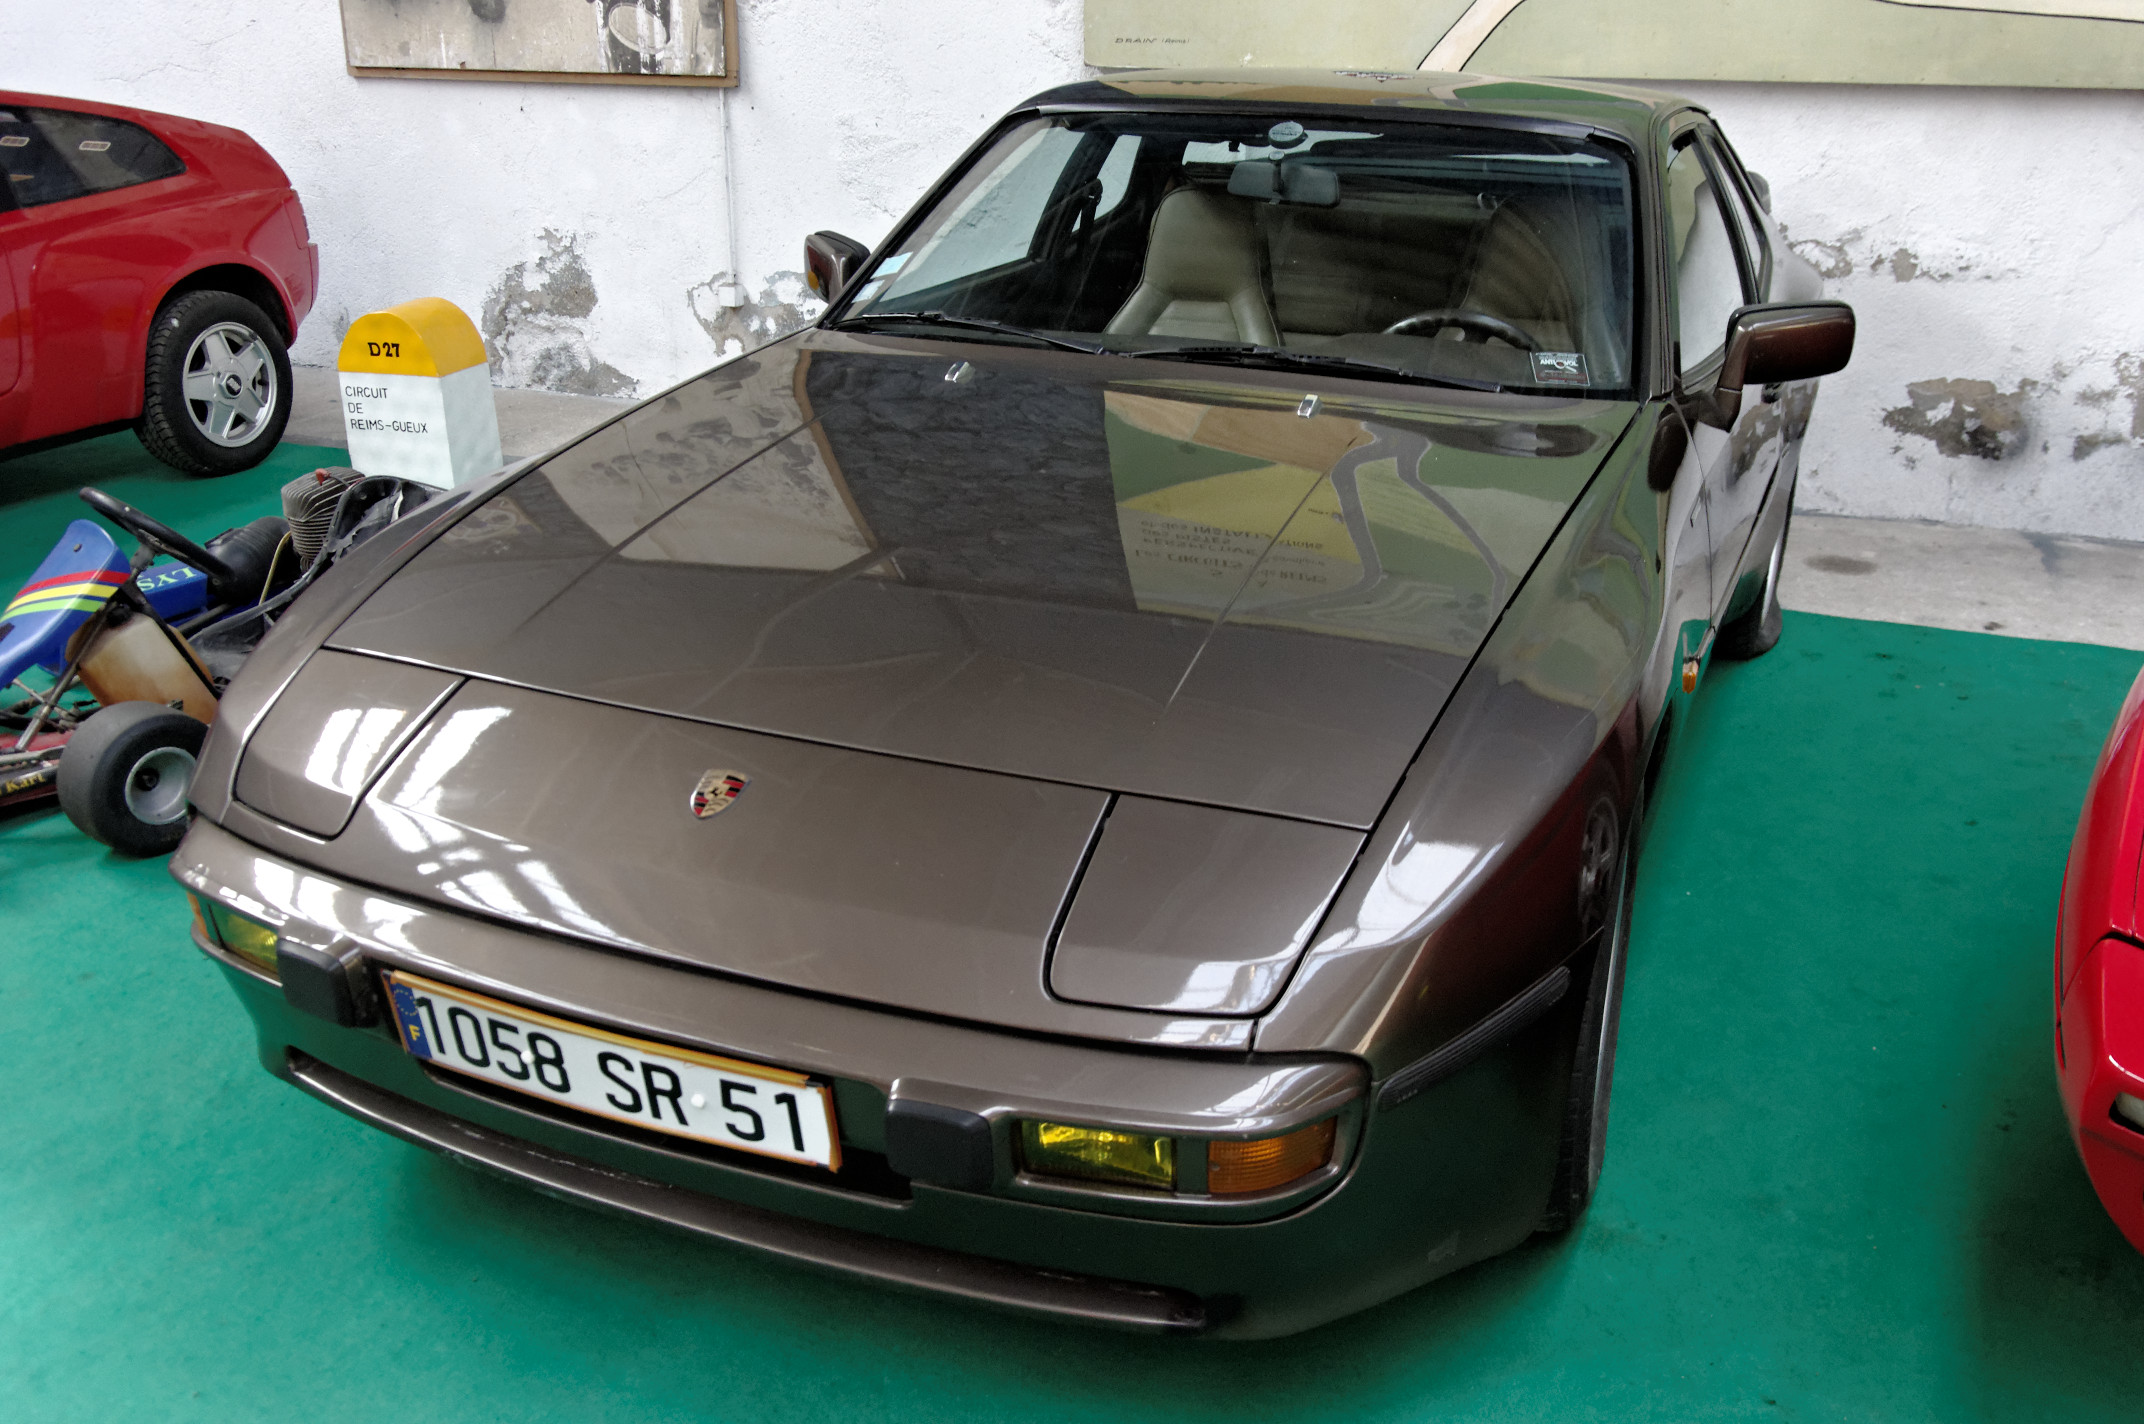 file:porsche - 944 - 1985 (m.a.r.c.) - wikimedia commons